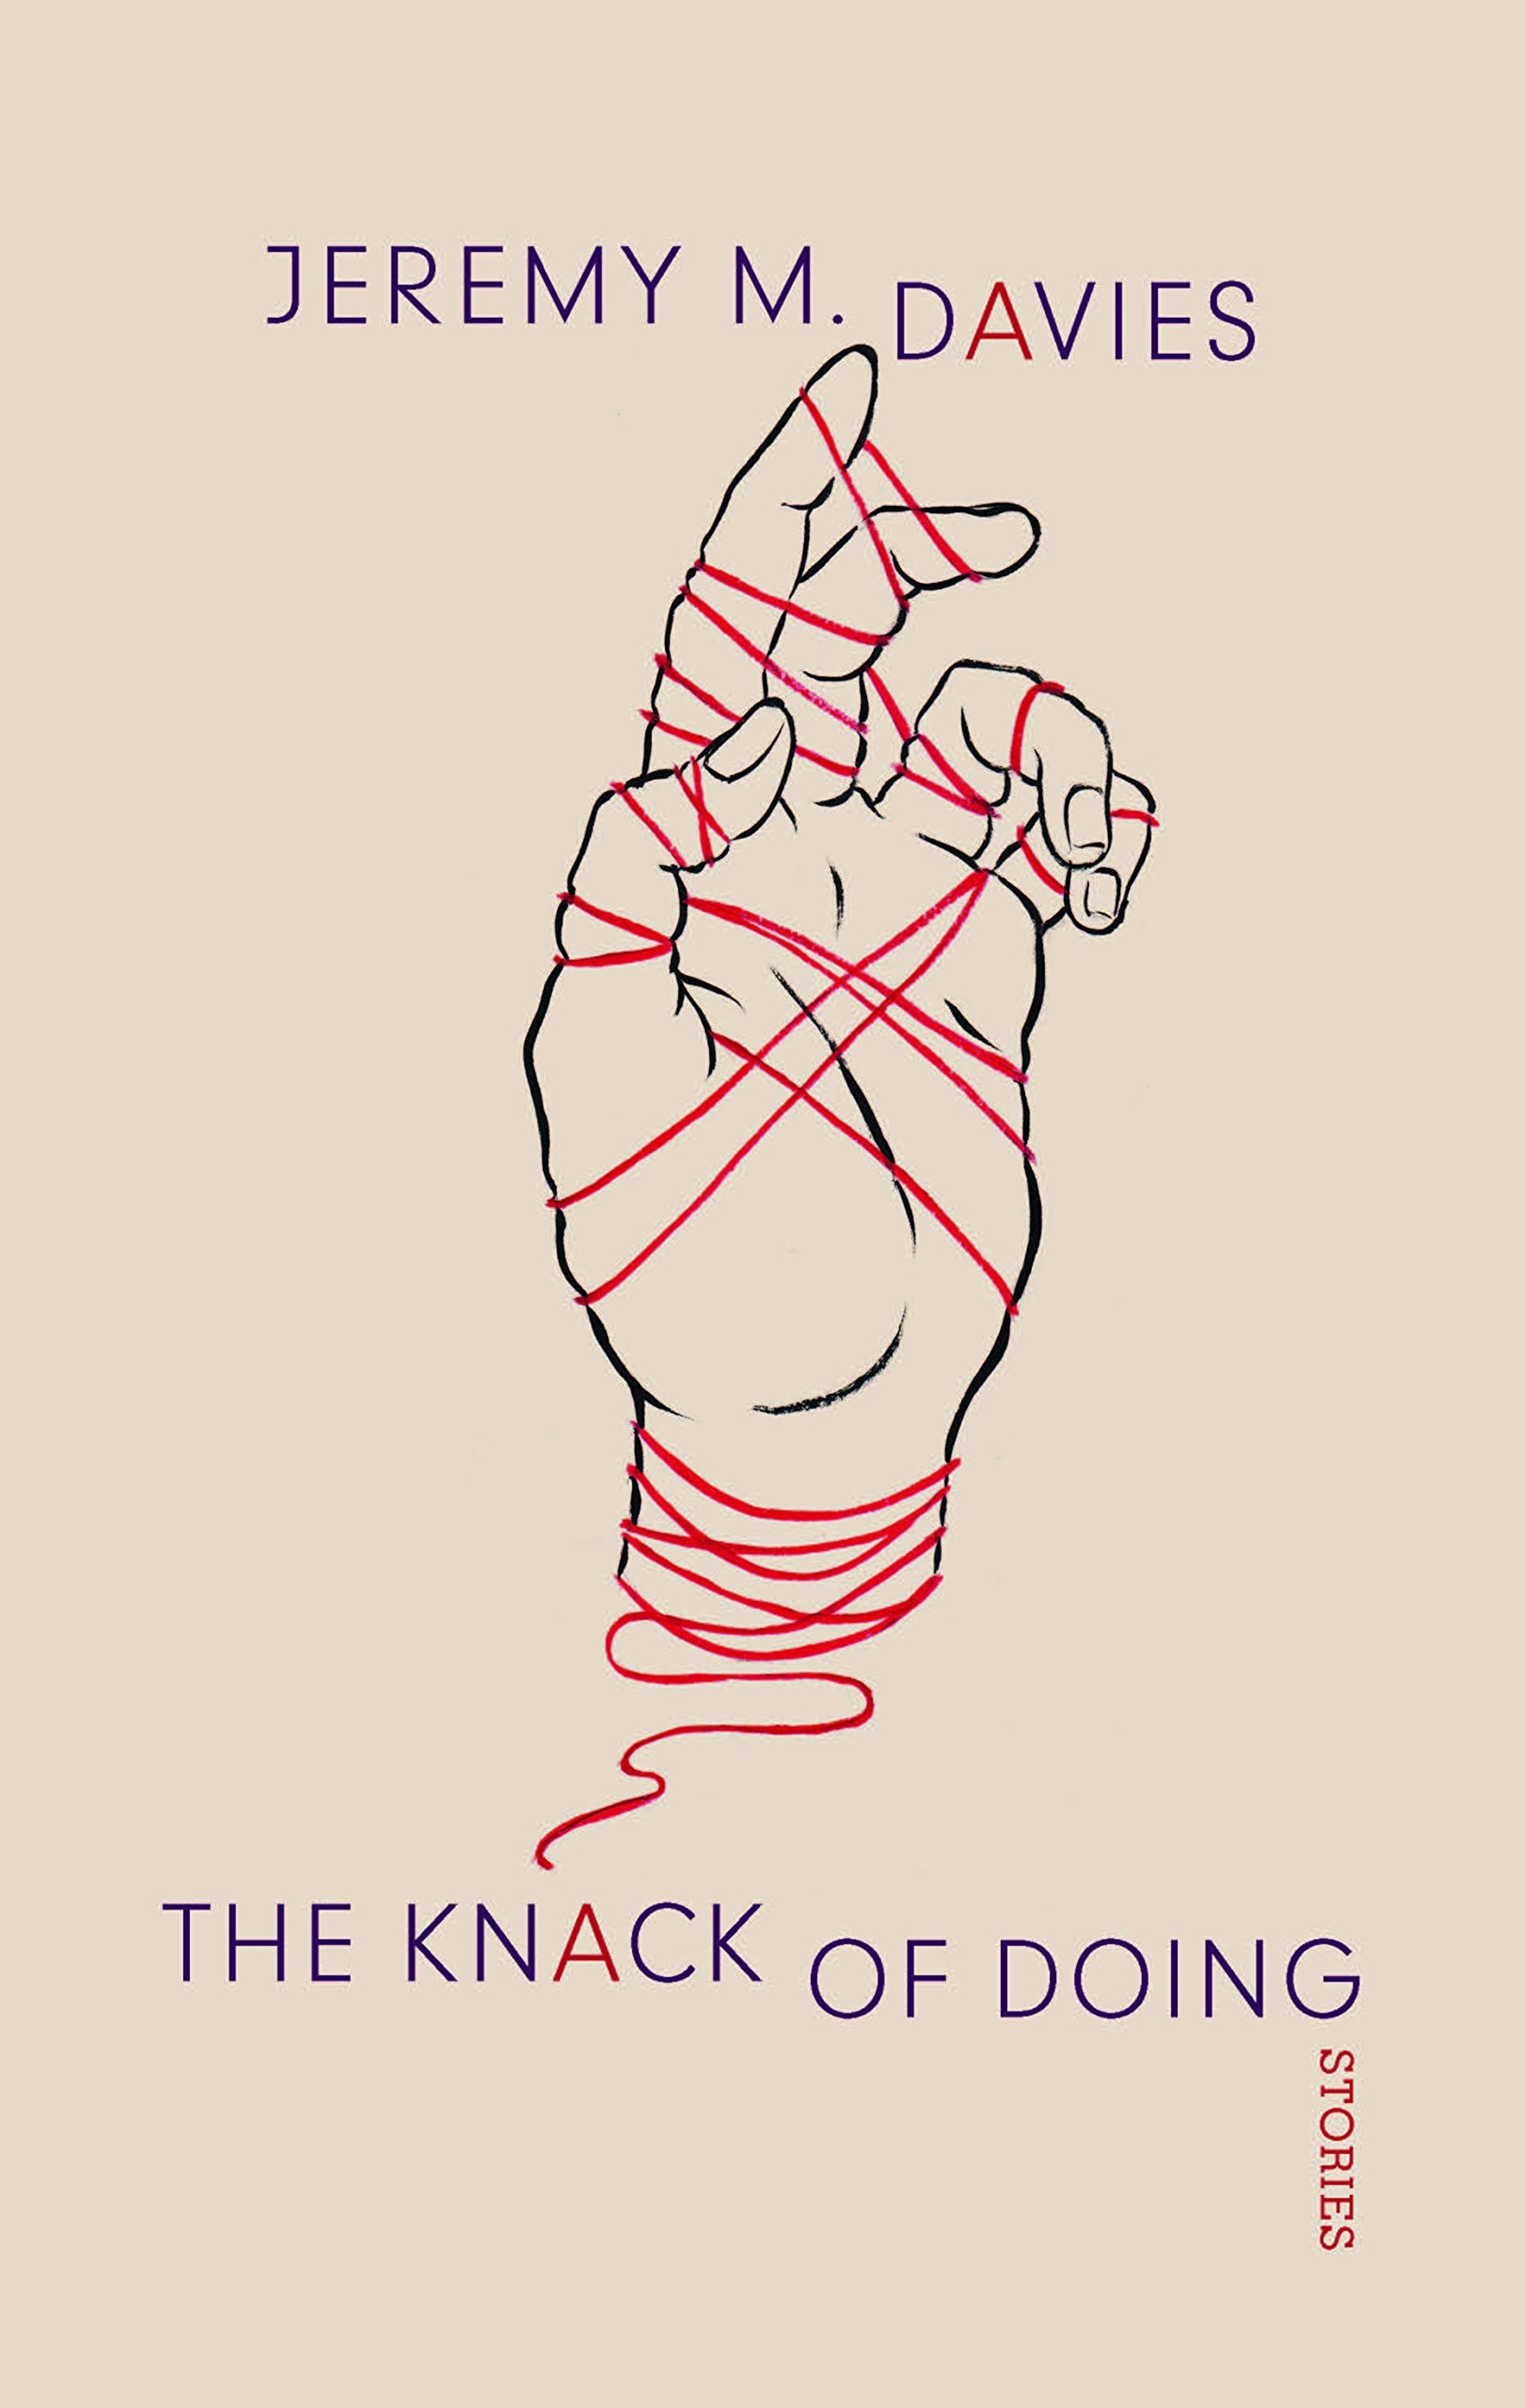 The Knack of Doing  by  Jeremy M. Davies  (Godine, March 2016)  Reviewed by  Hal Hlavinka